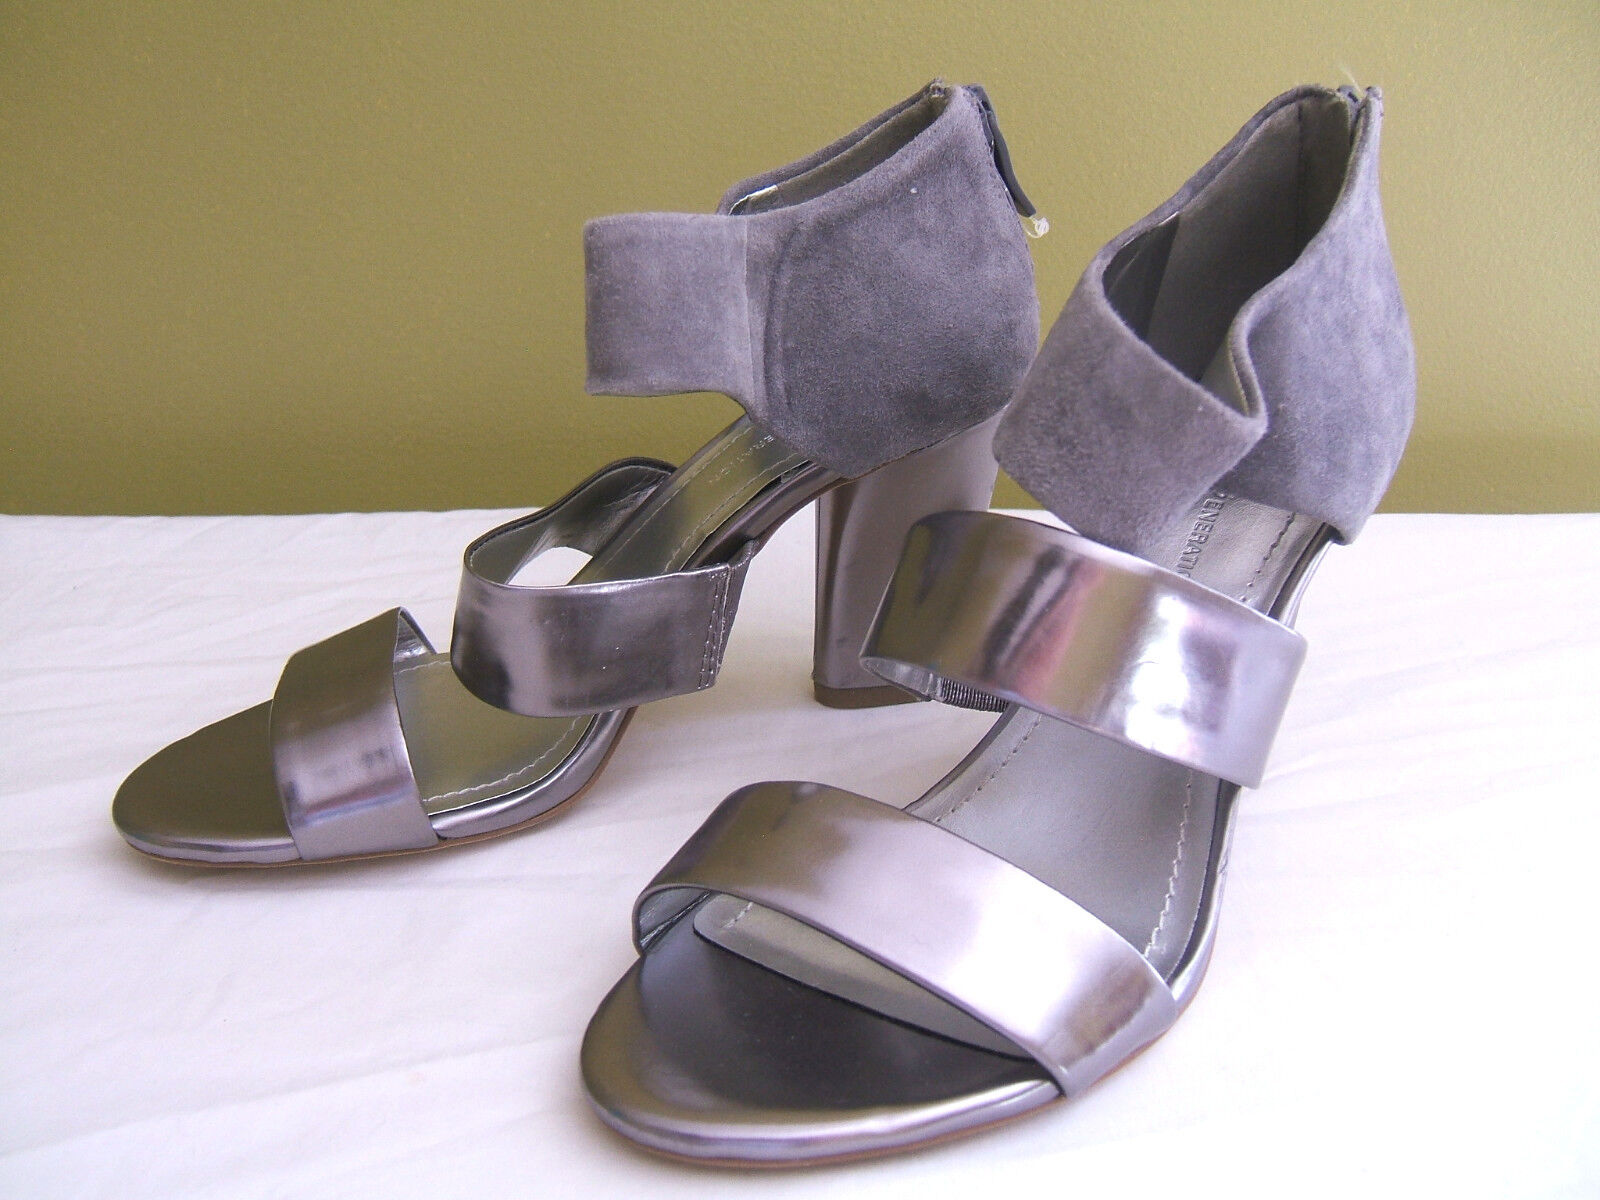 NEW  BCBGeneration Gorgeous Leather Suede Orianthi Silver Heels Sandals Sandals Sandals 7 B  128 f48a20